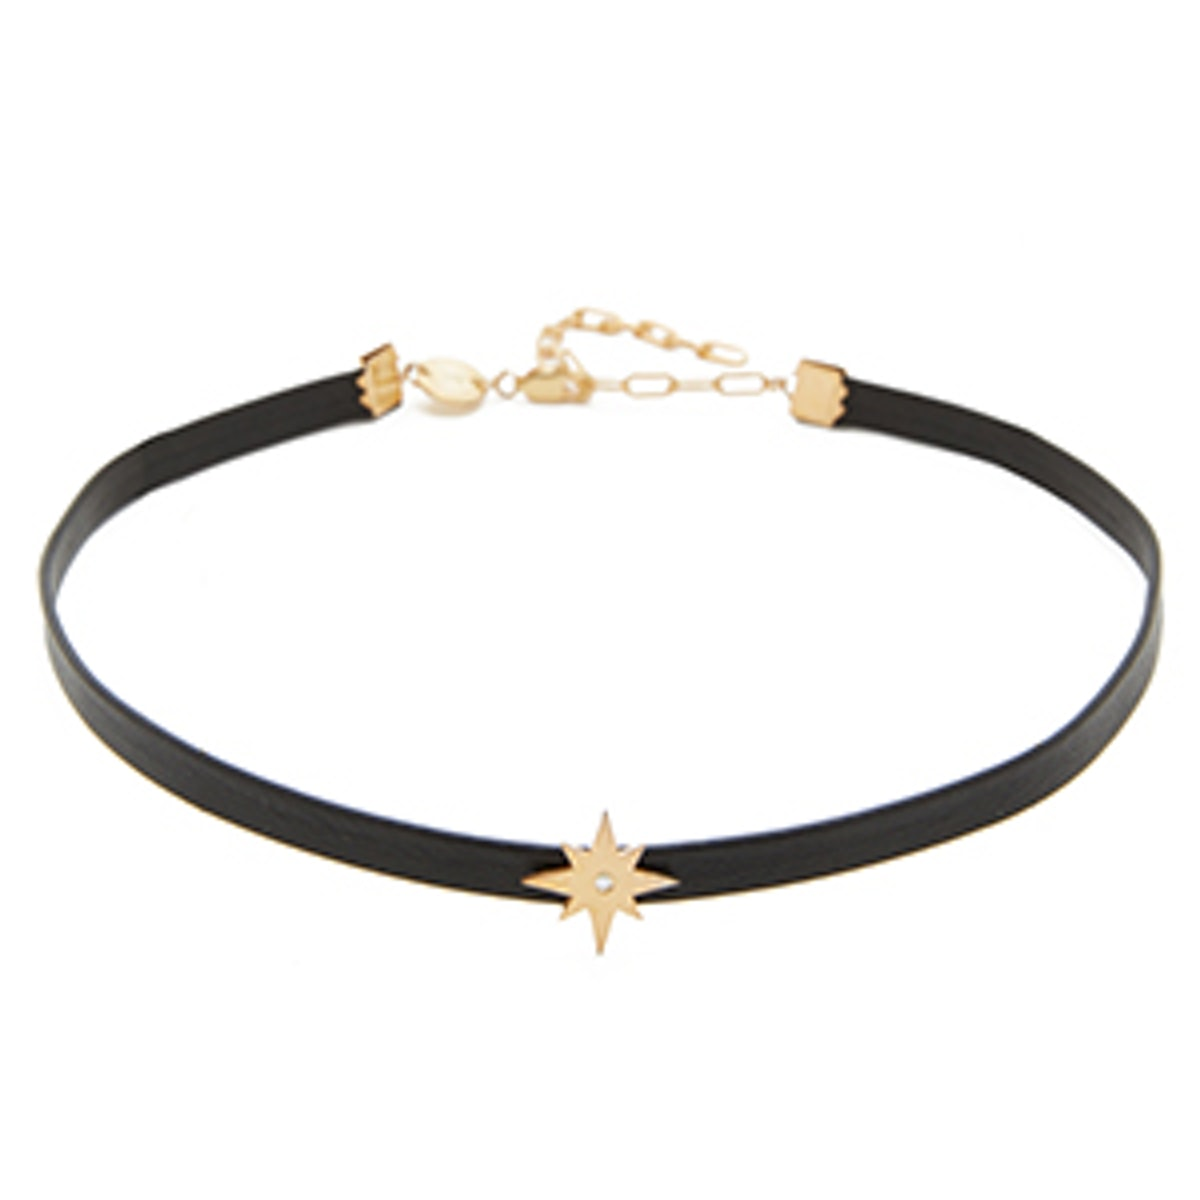 Ivy Gia Choker Necklace